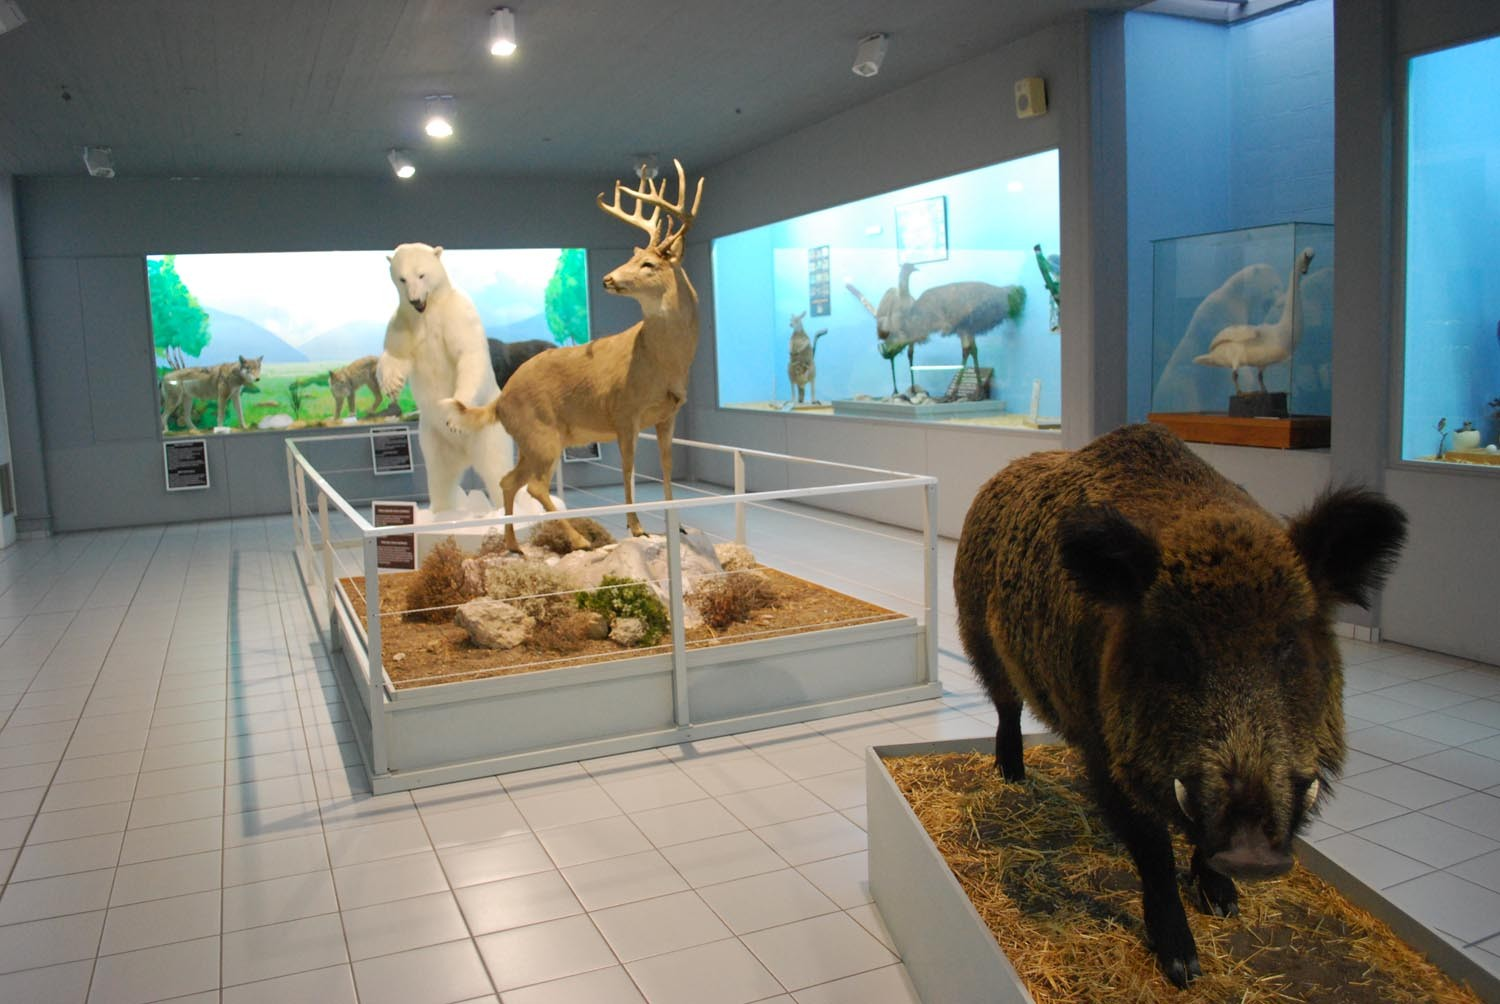 Palaeontological museum of Samos, in-samos